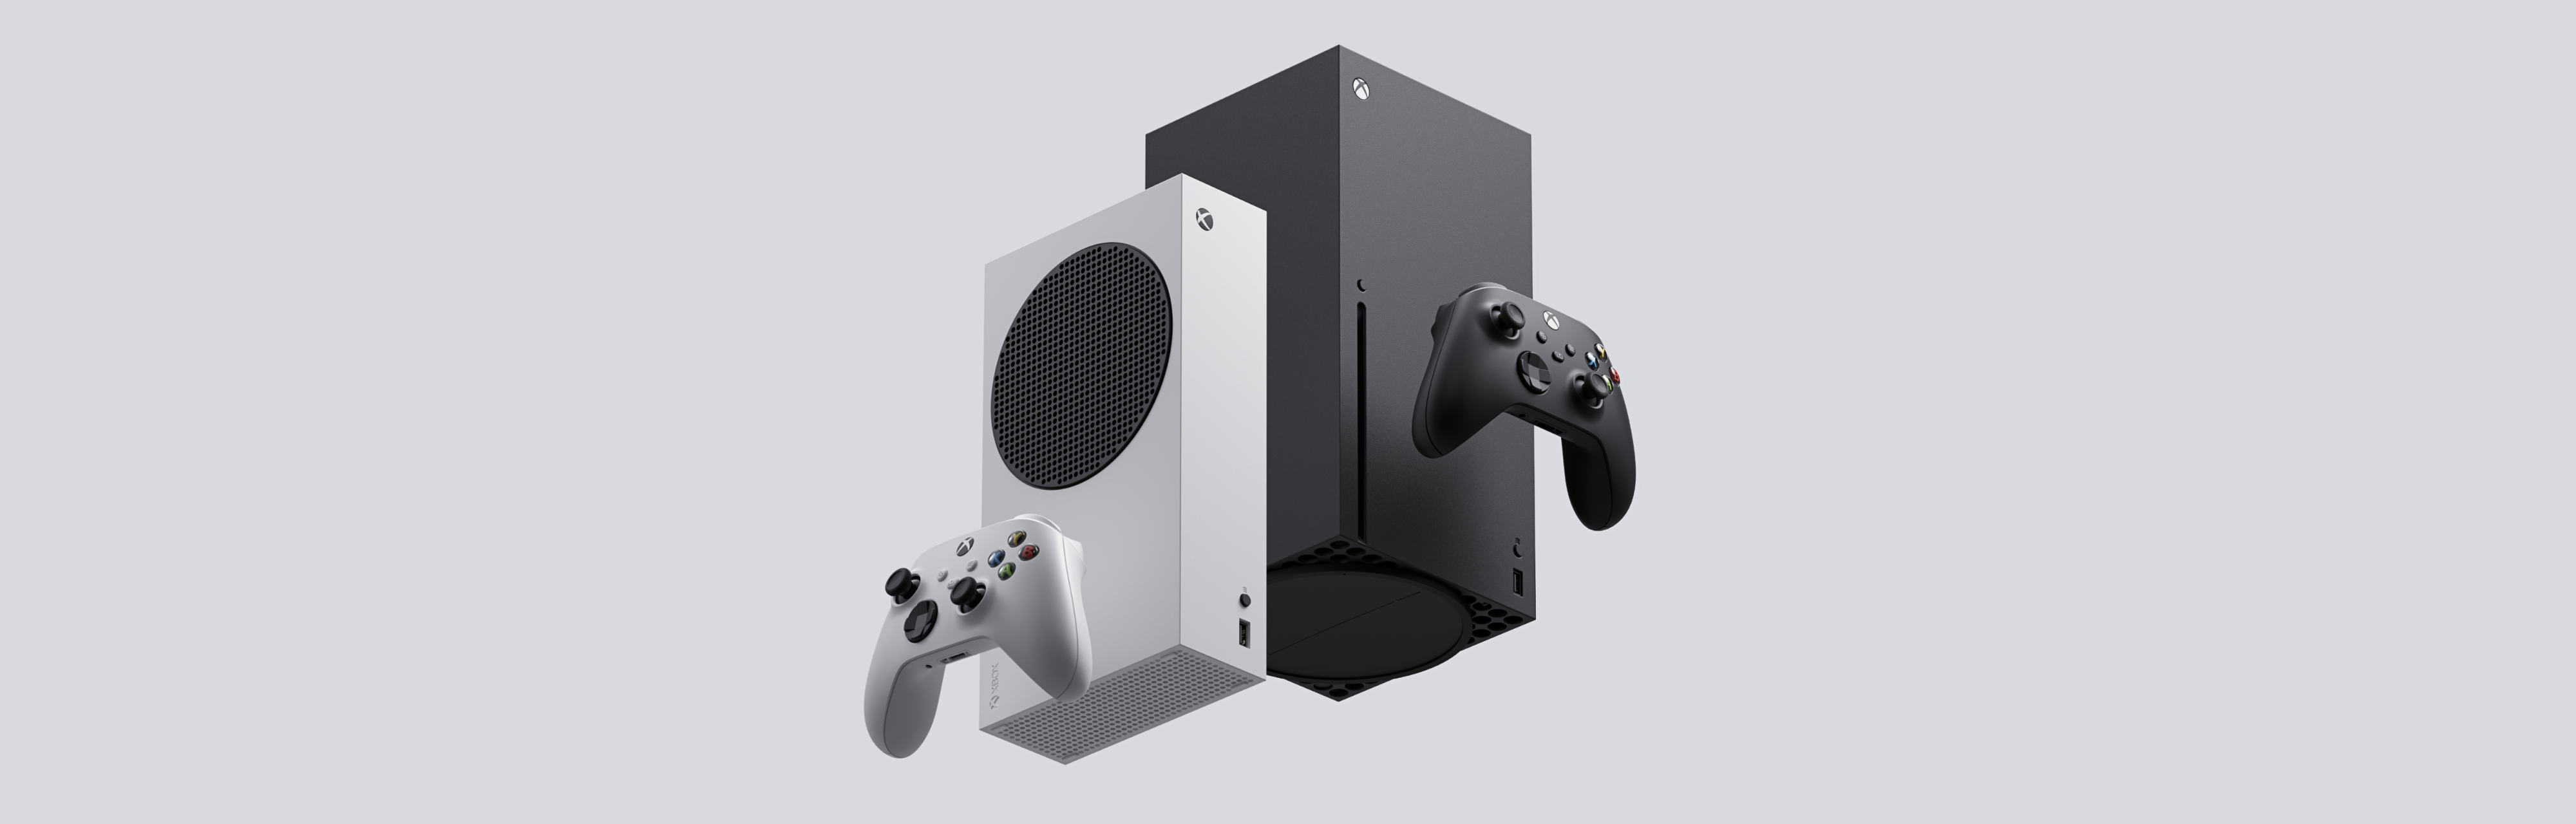 Behind The Design Xbox Series X And Xbox Series S By Joline Tang Microsoft Design Sep 2020 Medium